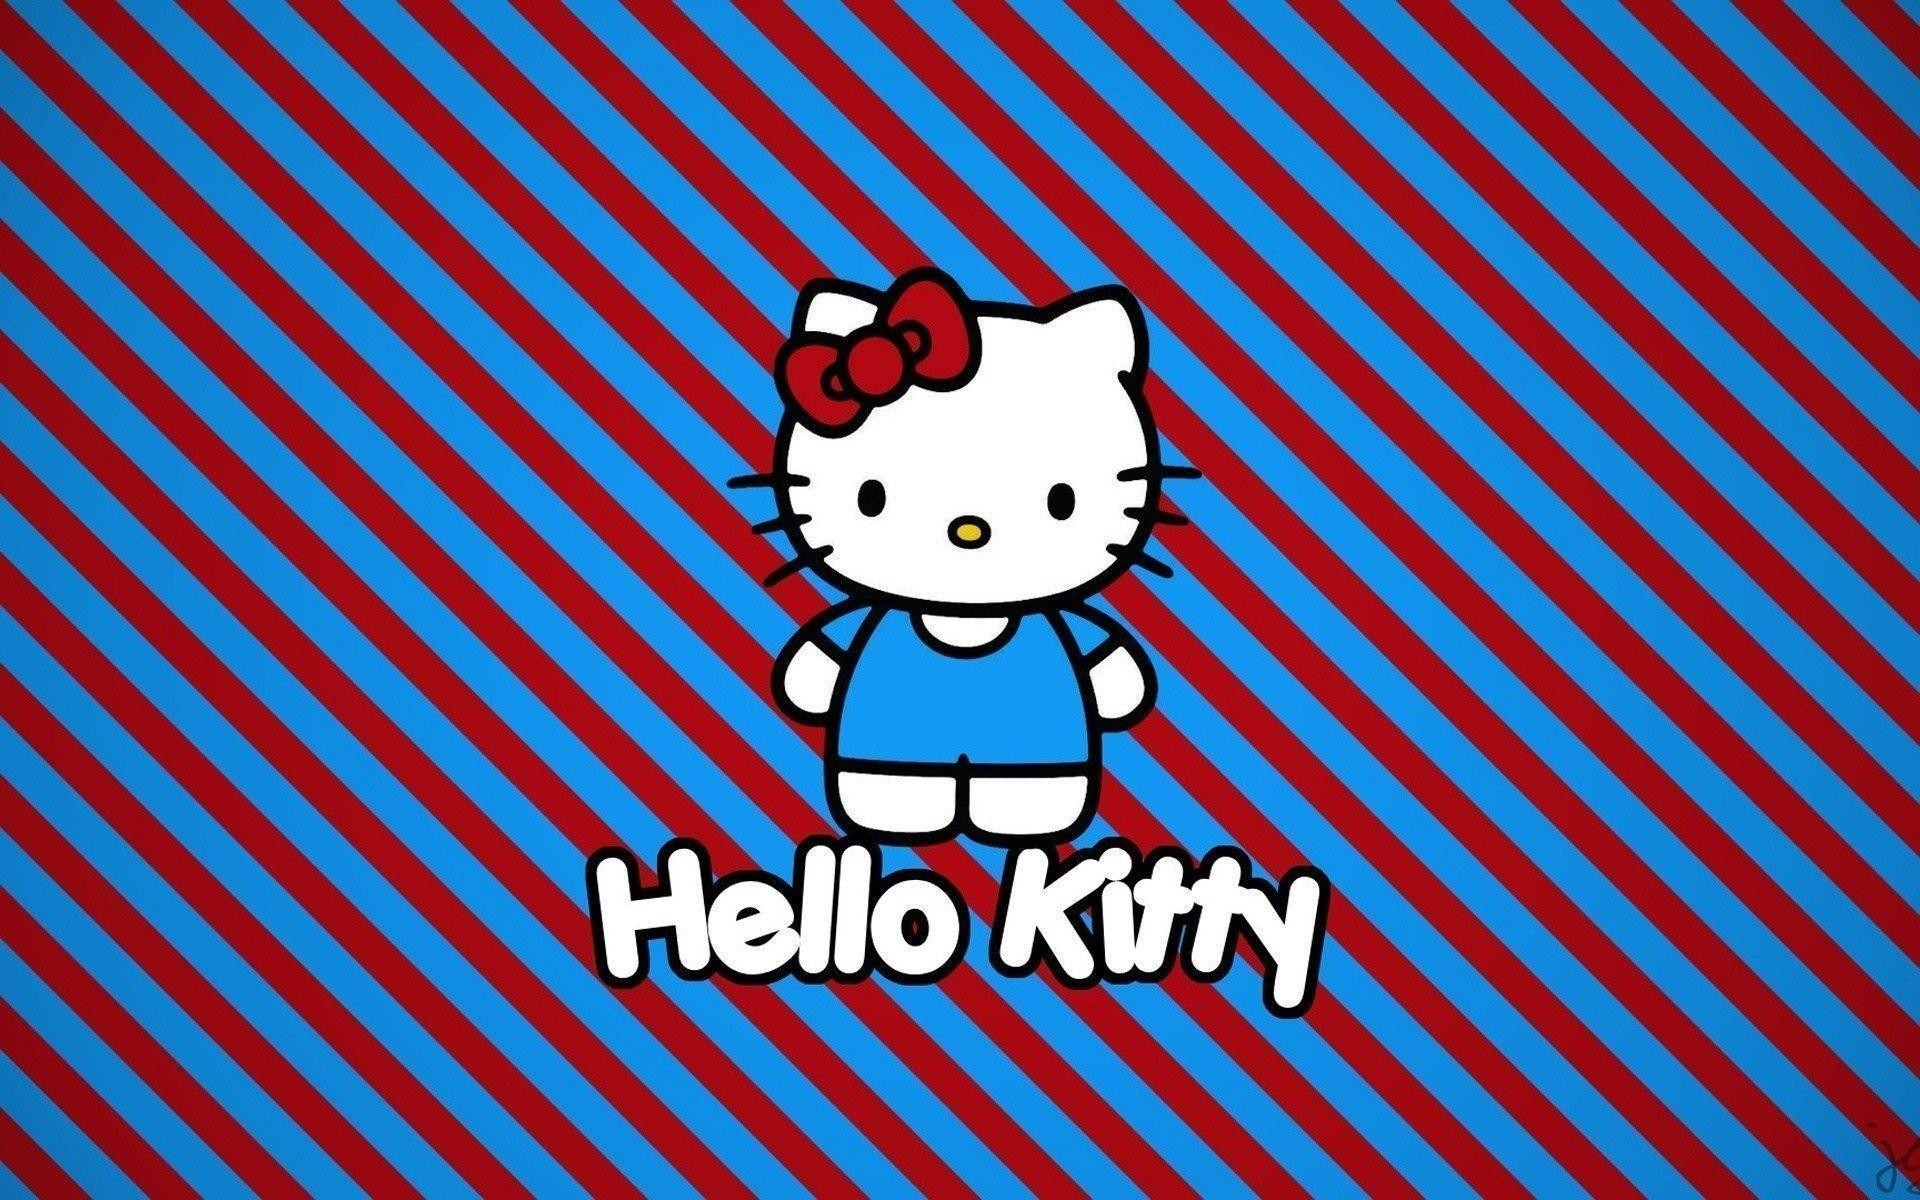 1920x1200 Hello Kitty Cartoon Stripes Red Blue HD Wallpaper - ZoomWalls